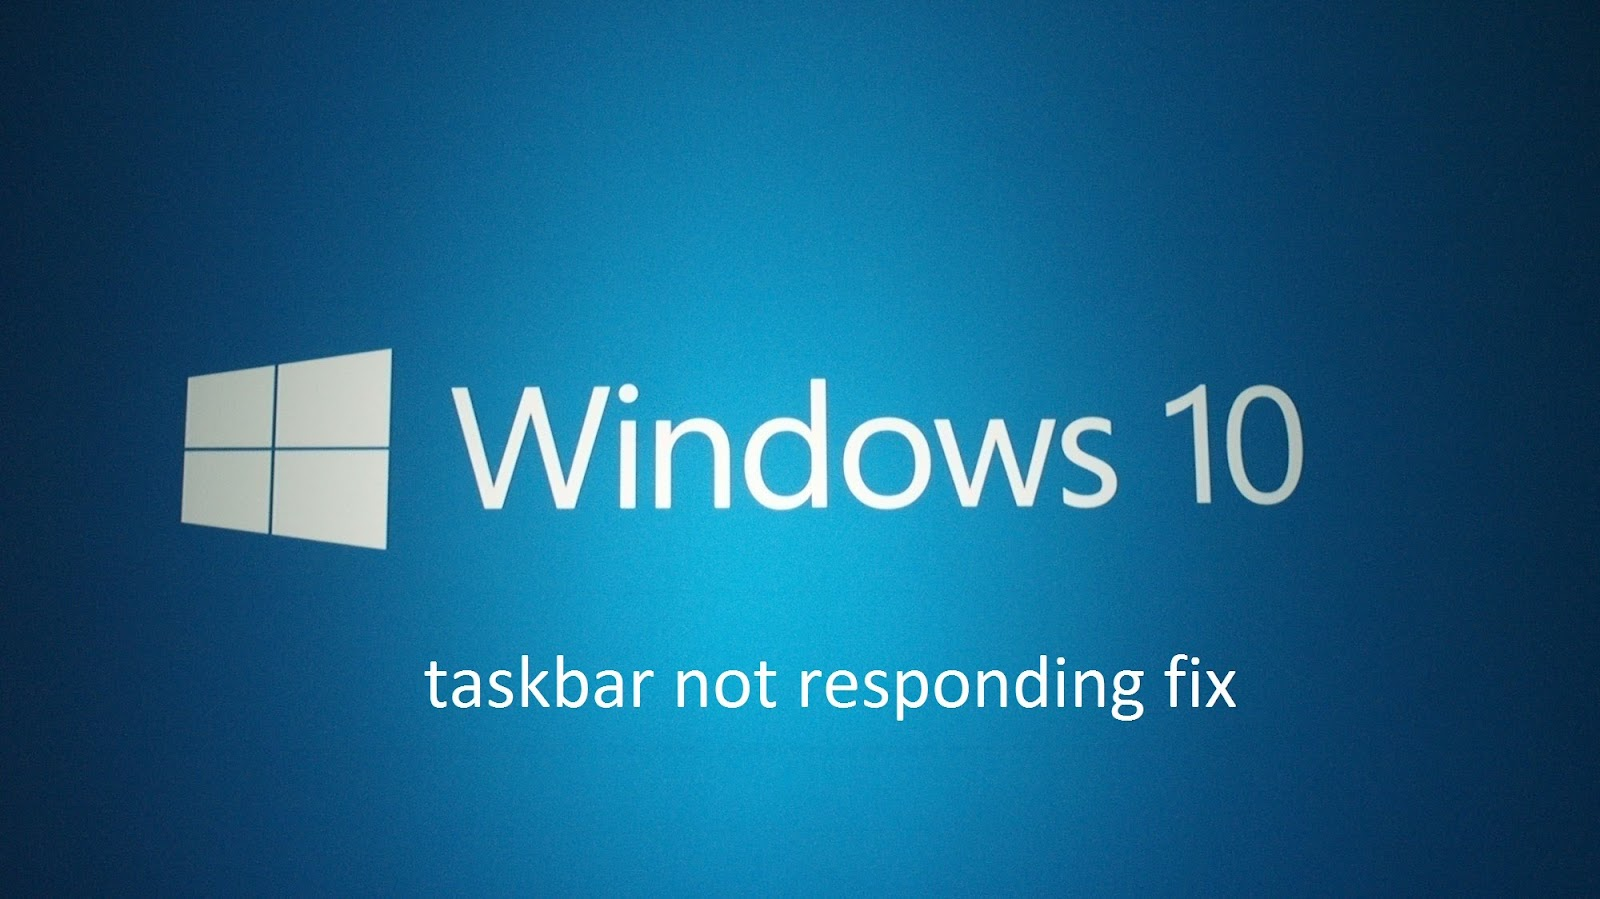 How to Resolve Taskbar Not Responding